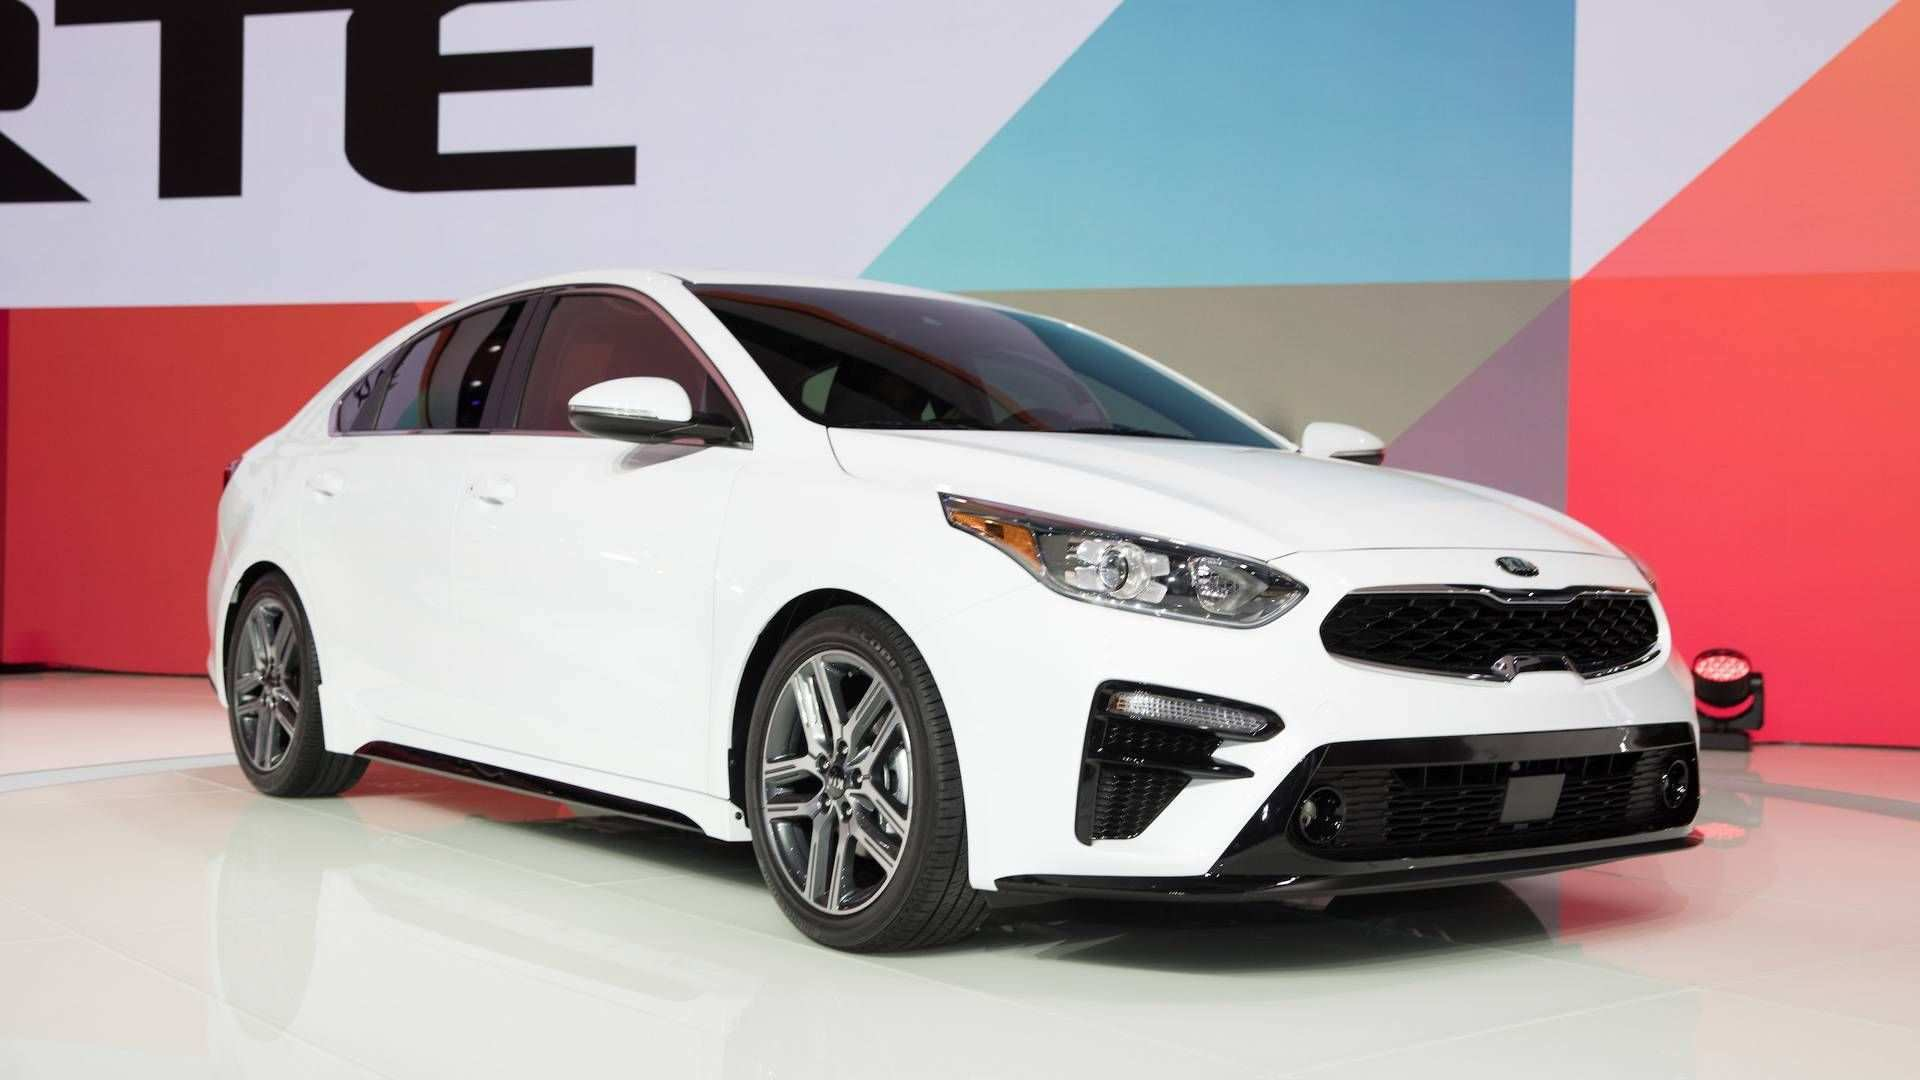 63 All New Kia 2019 Mexico Price And Review